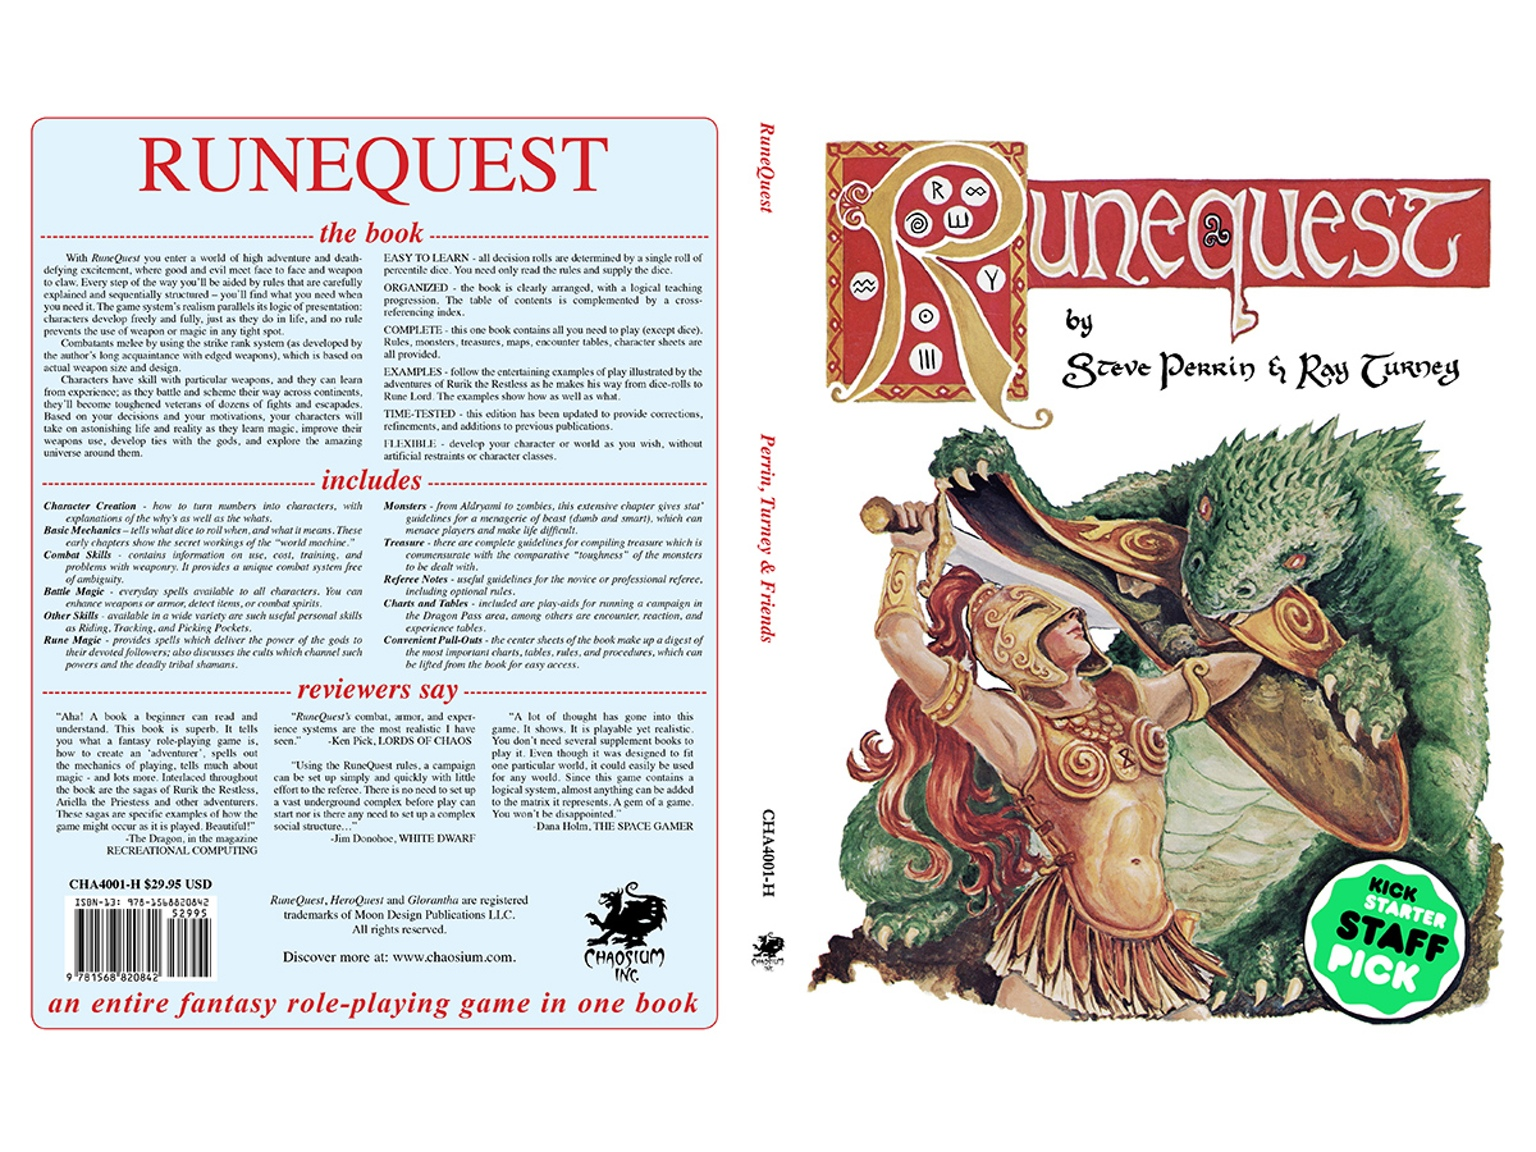 runequest2-full-cover.jpg